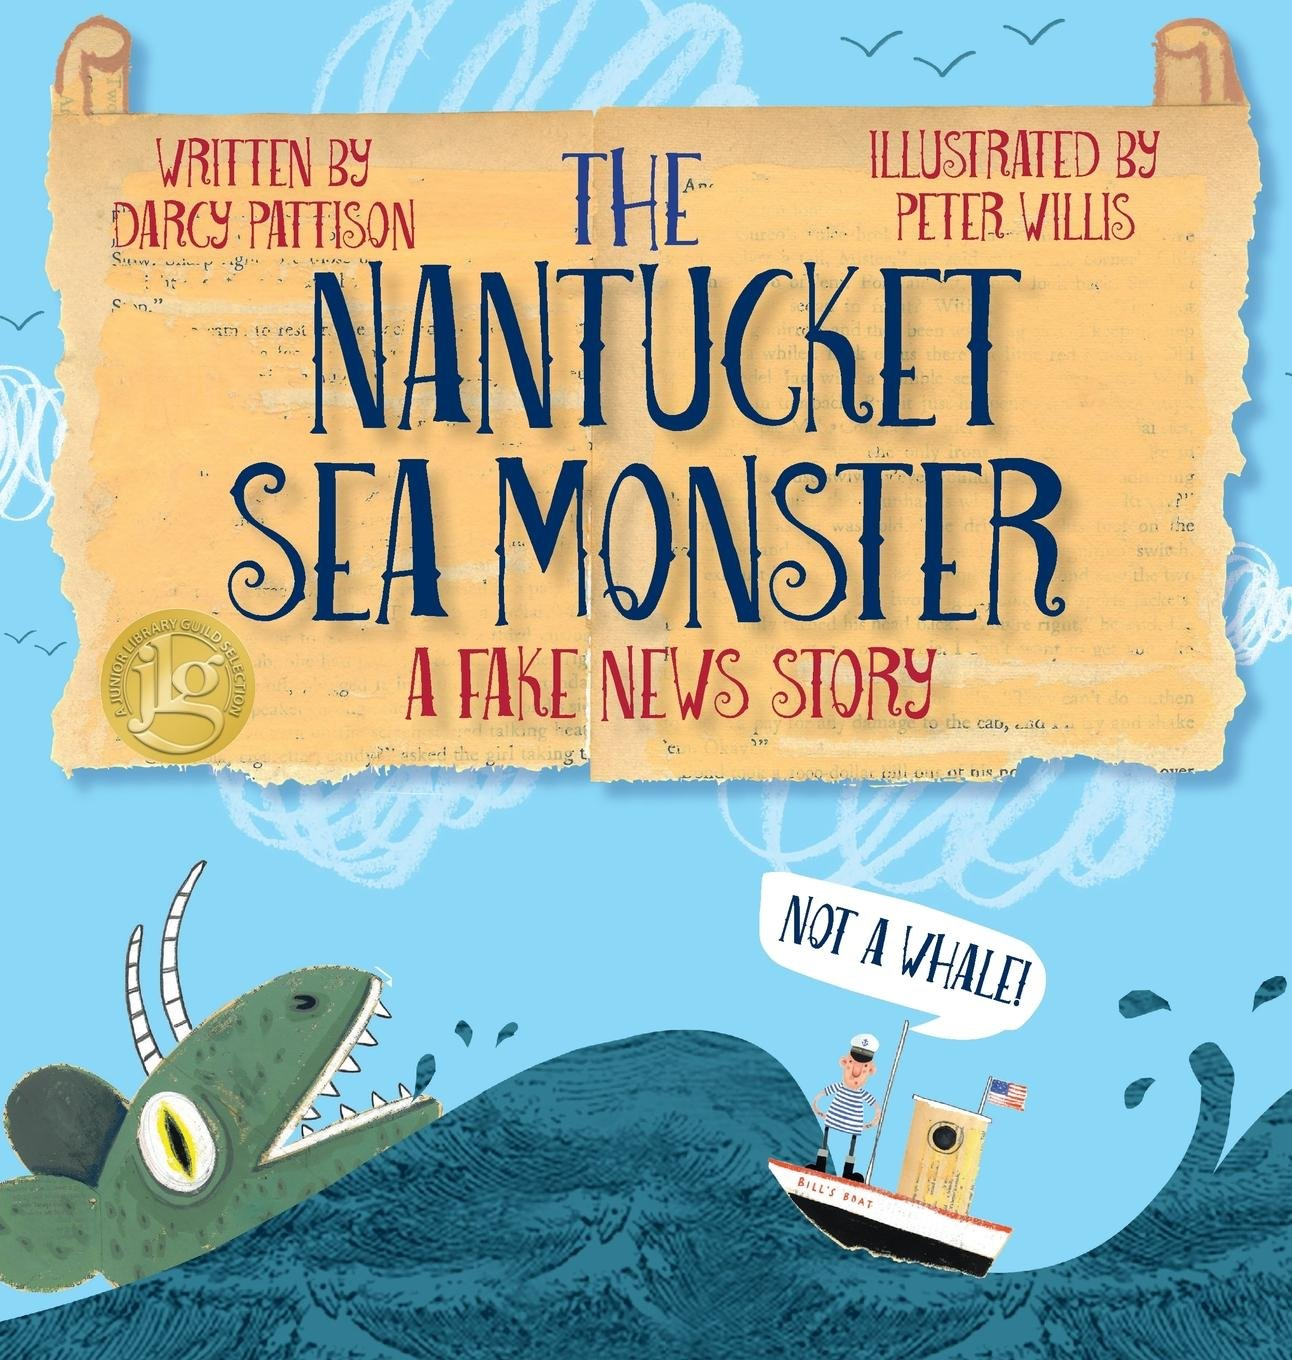 The cover of the book 'The Nantucket Sea Monster: A Fake News Story' by Darcy Pattison.